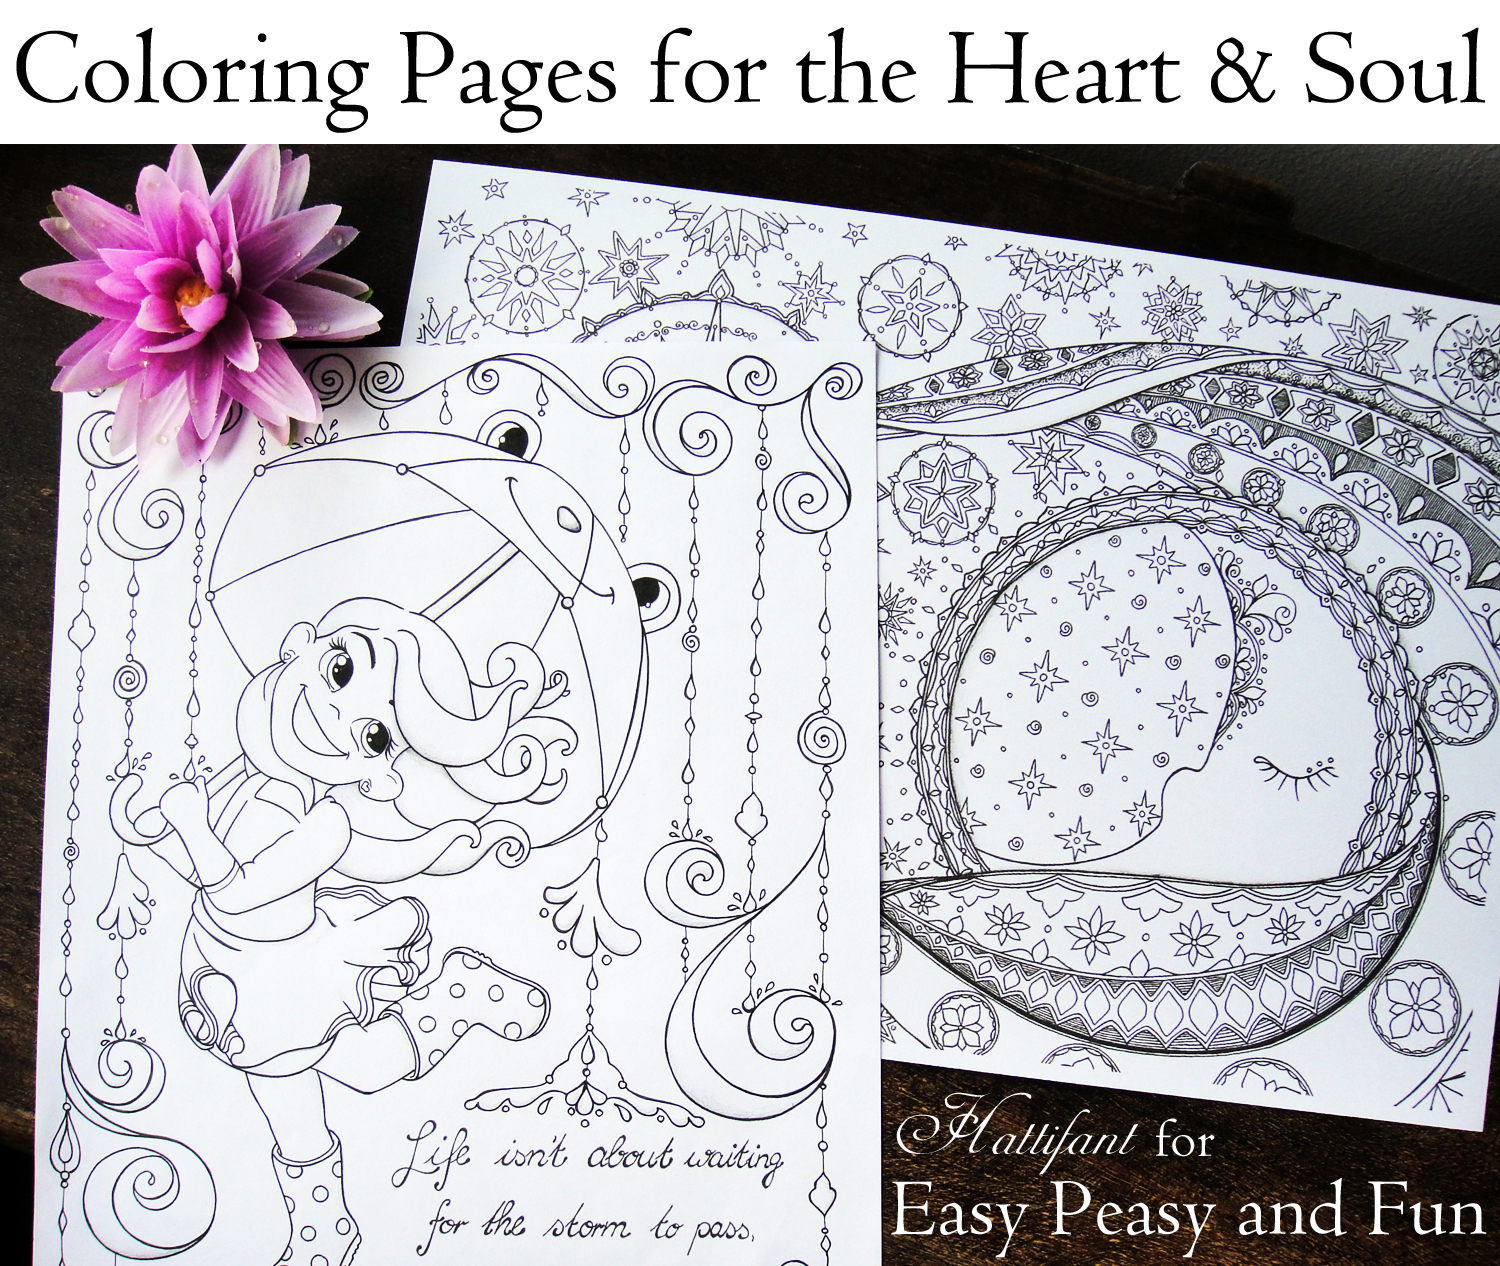 Coloring Pages for the Heart and Soul